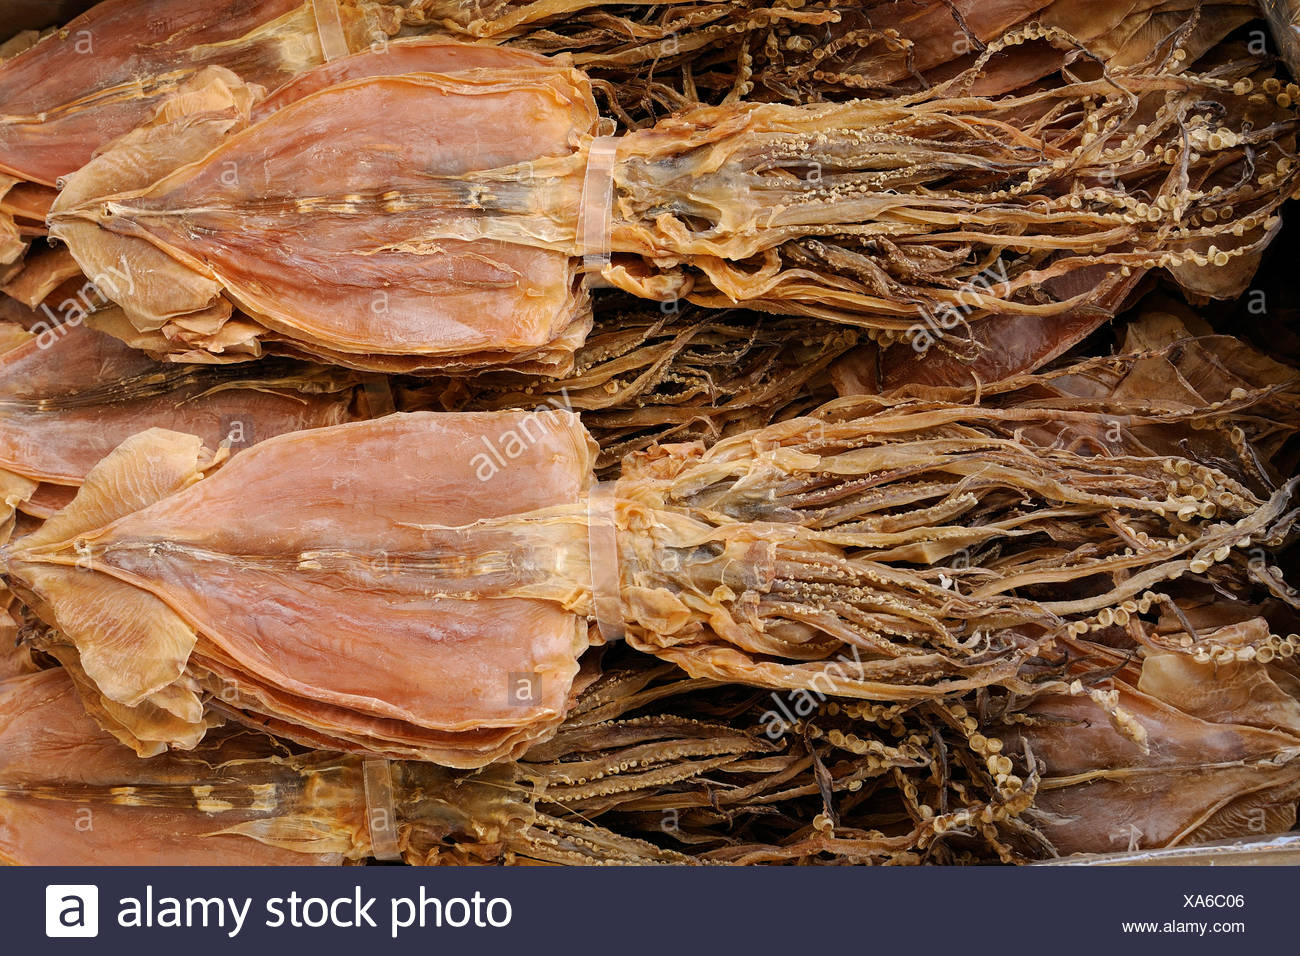 Dried squid at a fish market in Kyoto, Japan, East Asia, Asia - Stock Image